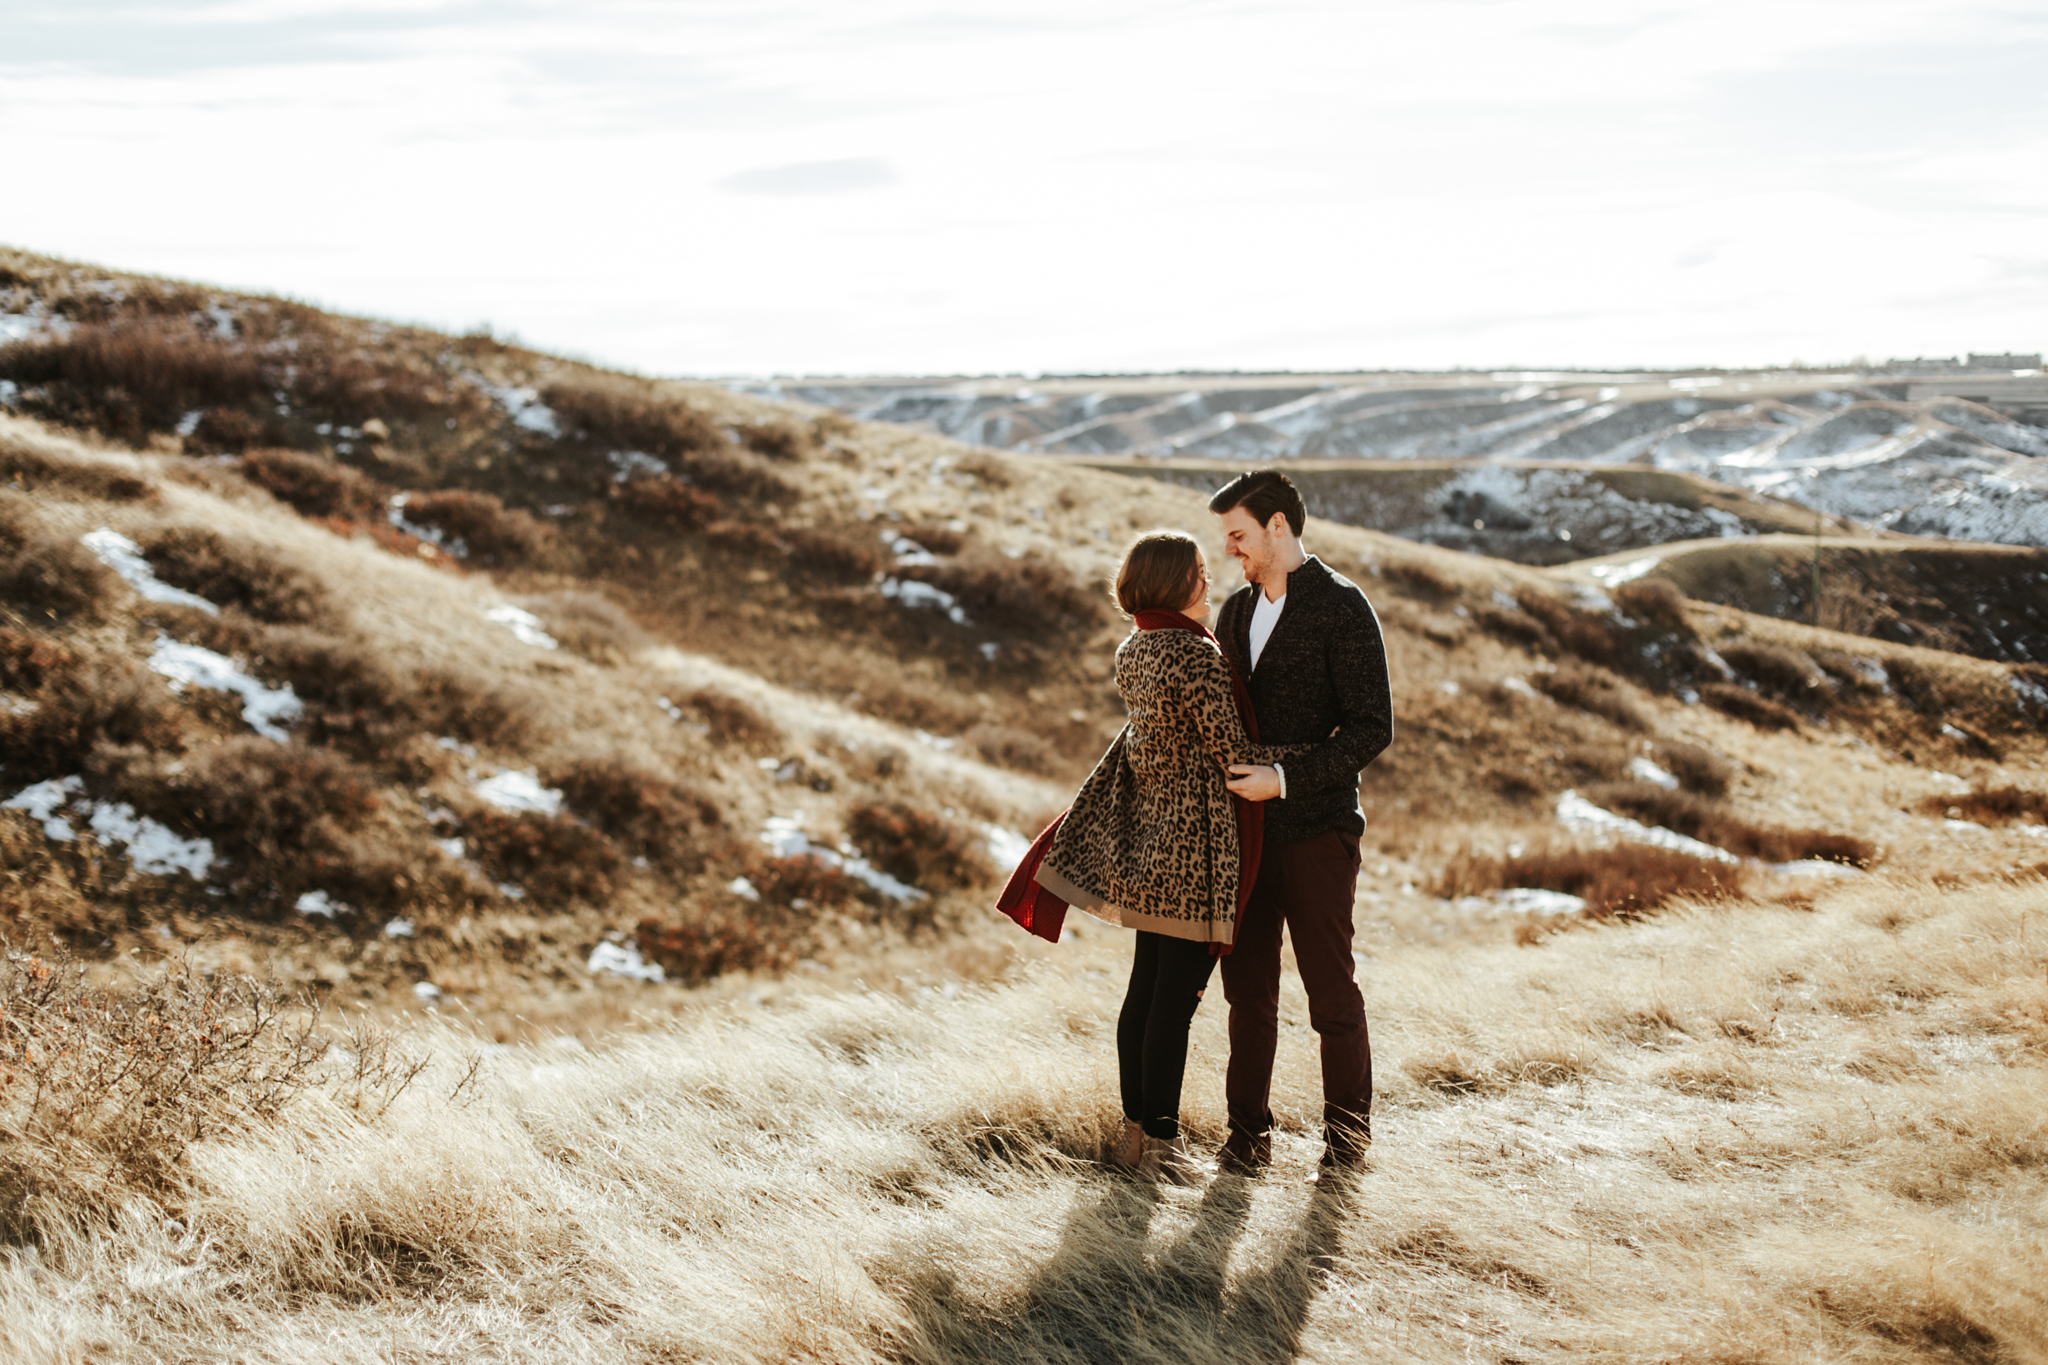 lethbridge-photographer-love-and-be-loved-photography-winter-engagement-emma-tanner-picture-image-photo-4.jpg